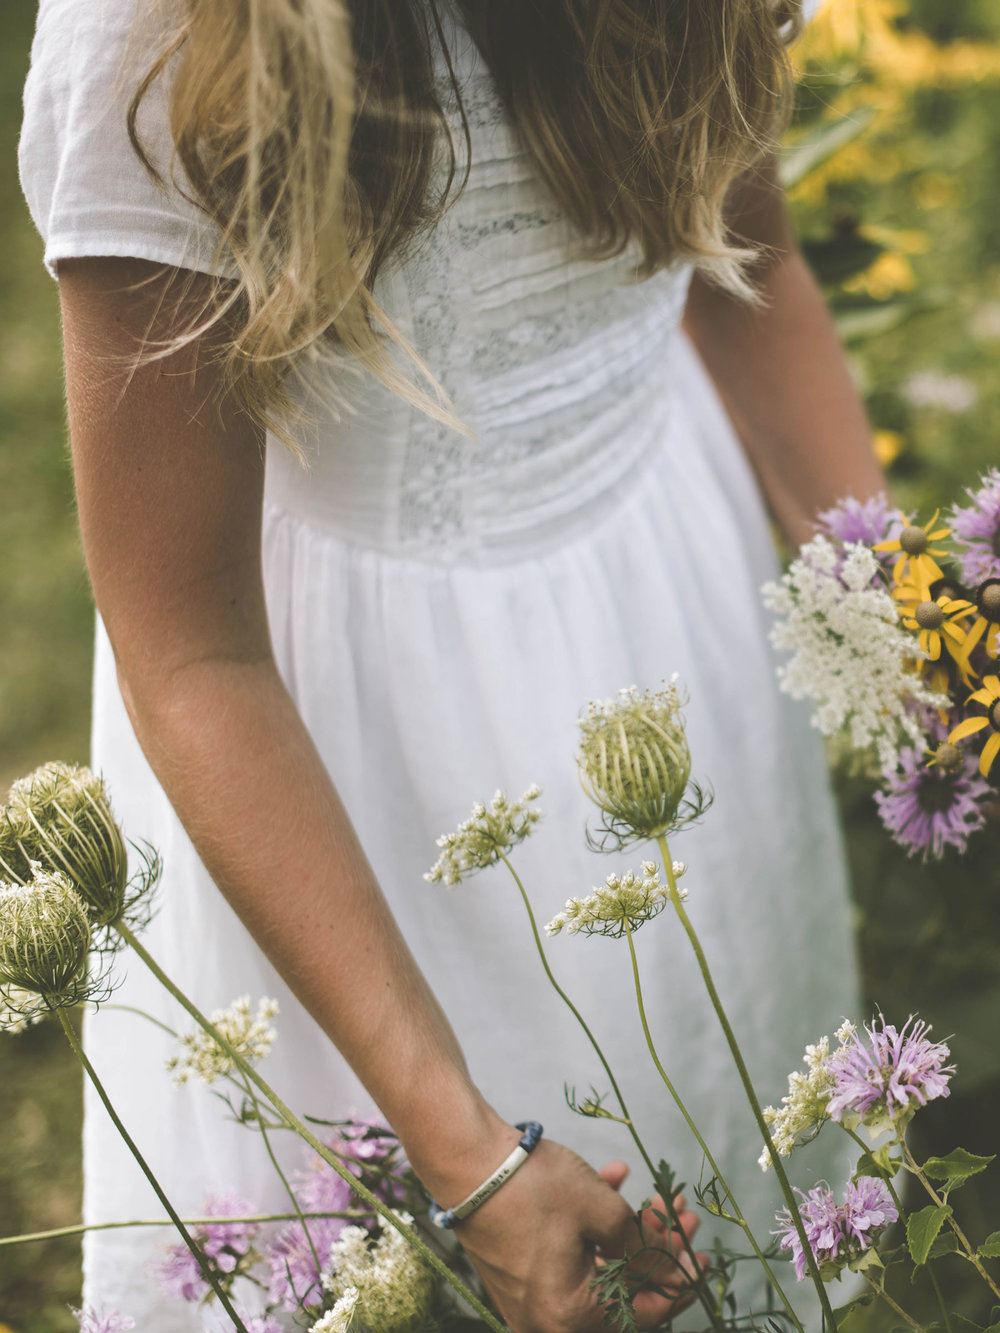 carina-about-flowerpicking-Hand-picking-of-Wildflowers.jpg